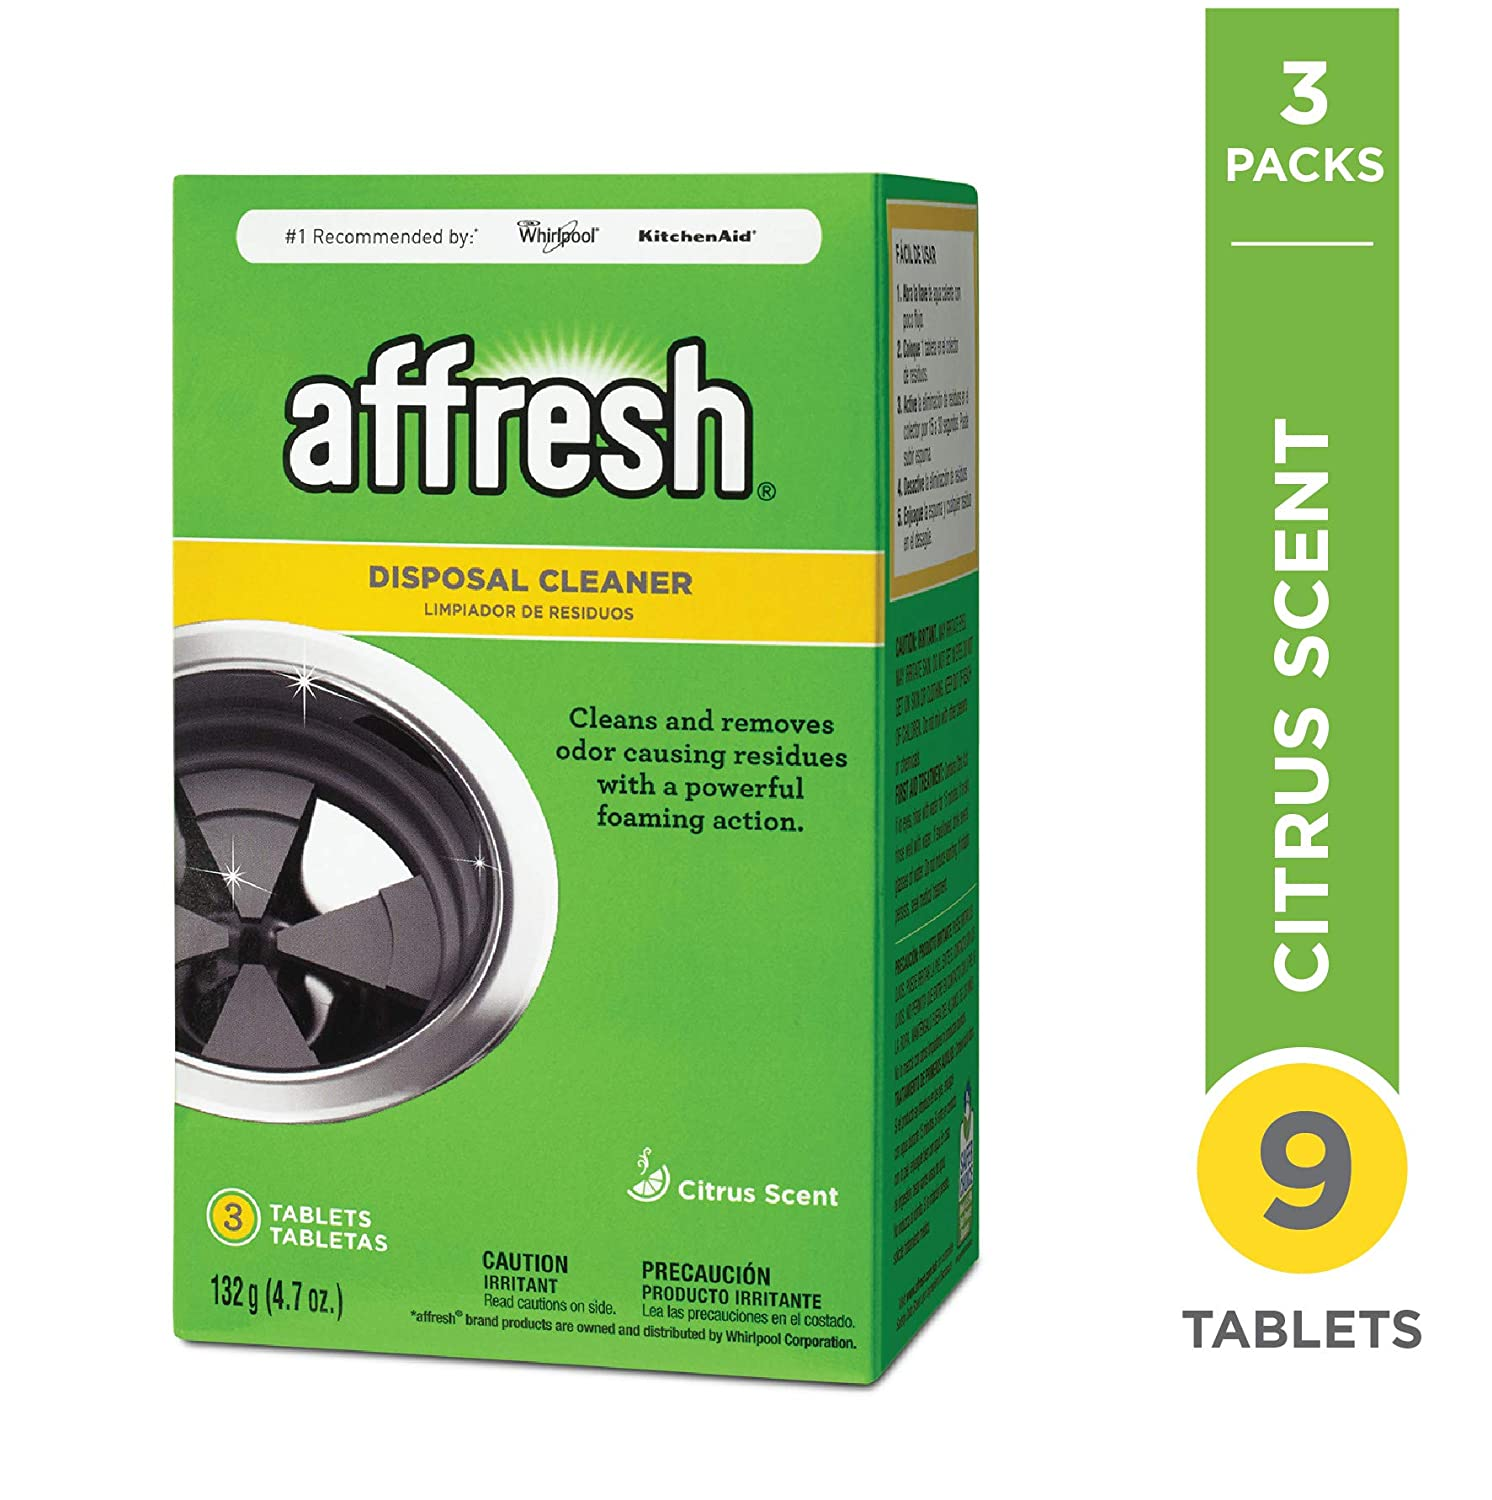 Affresh W10509526M3 Disposal Cleaner 3 Pack